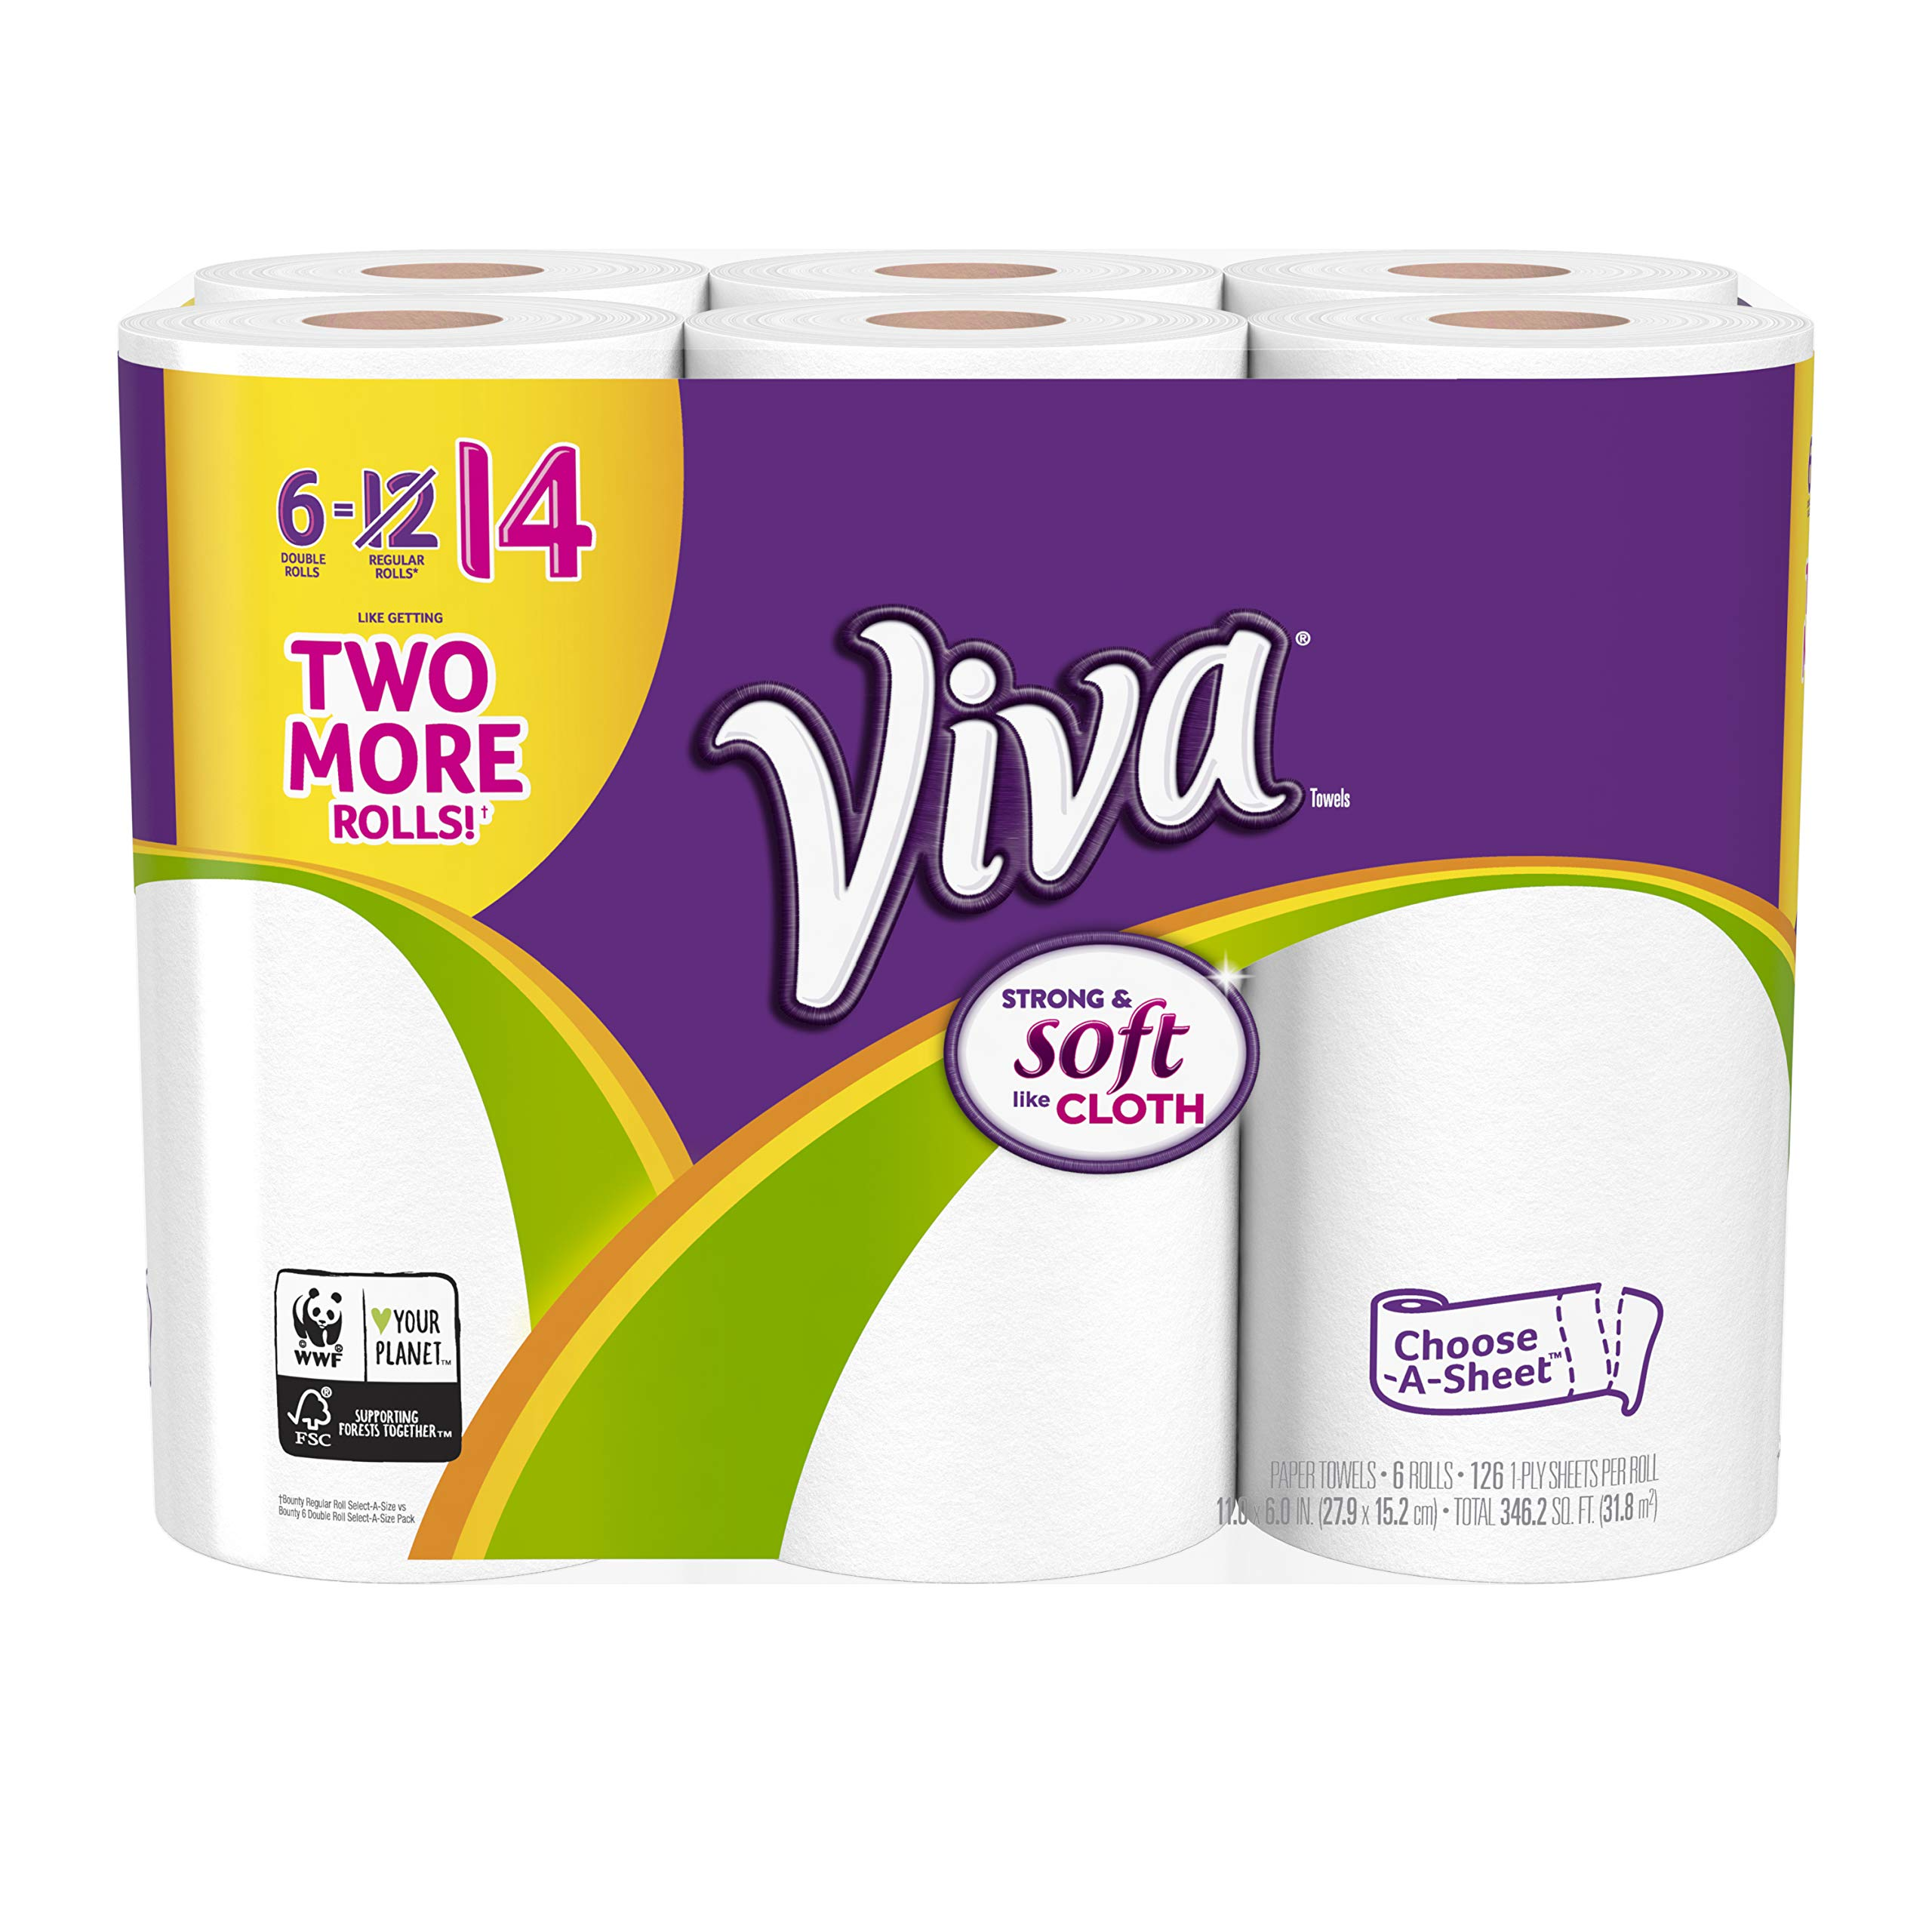 Viva Choose-A-Sheet* Paper Towels White Double Roll 6 Rolls